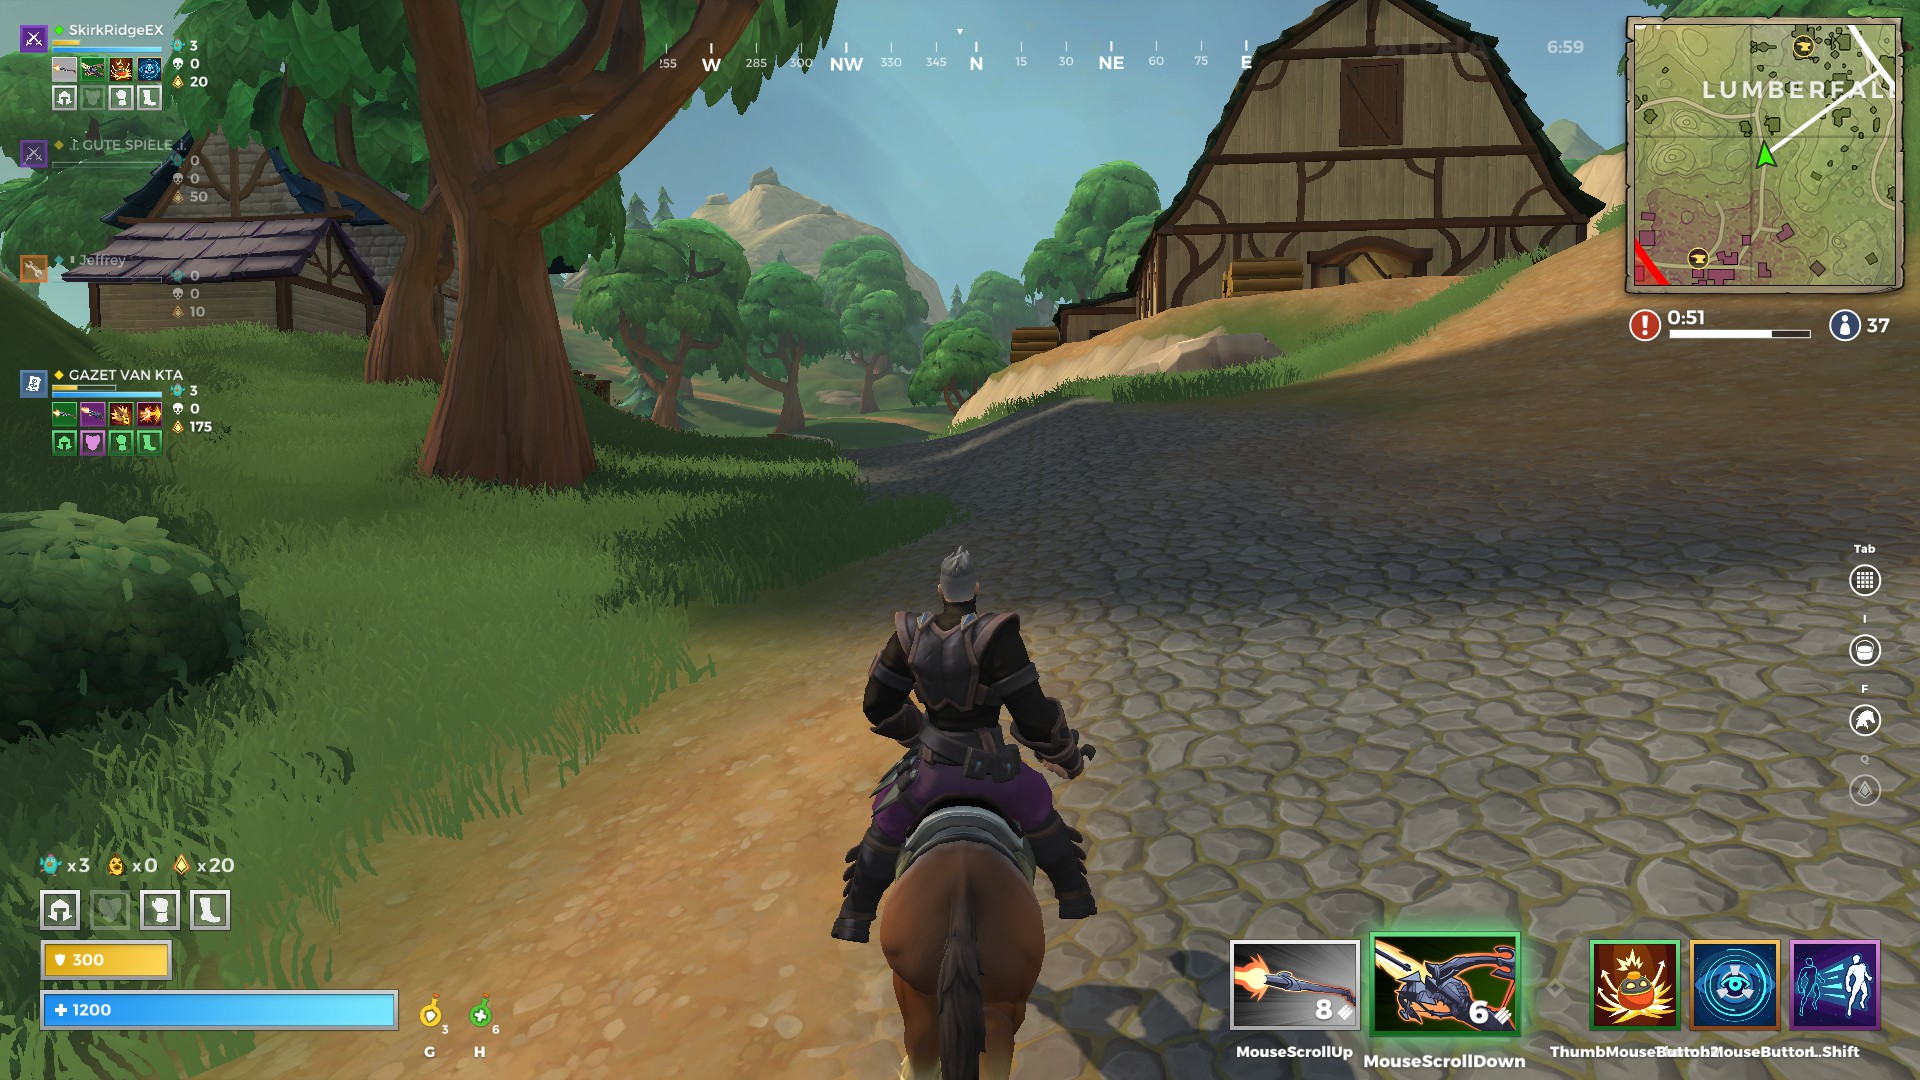 A view of Lumberfall in Realm Royale